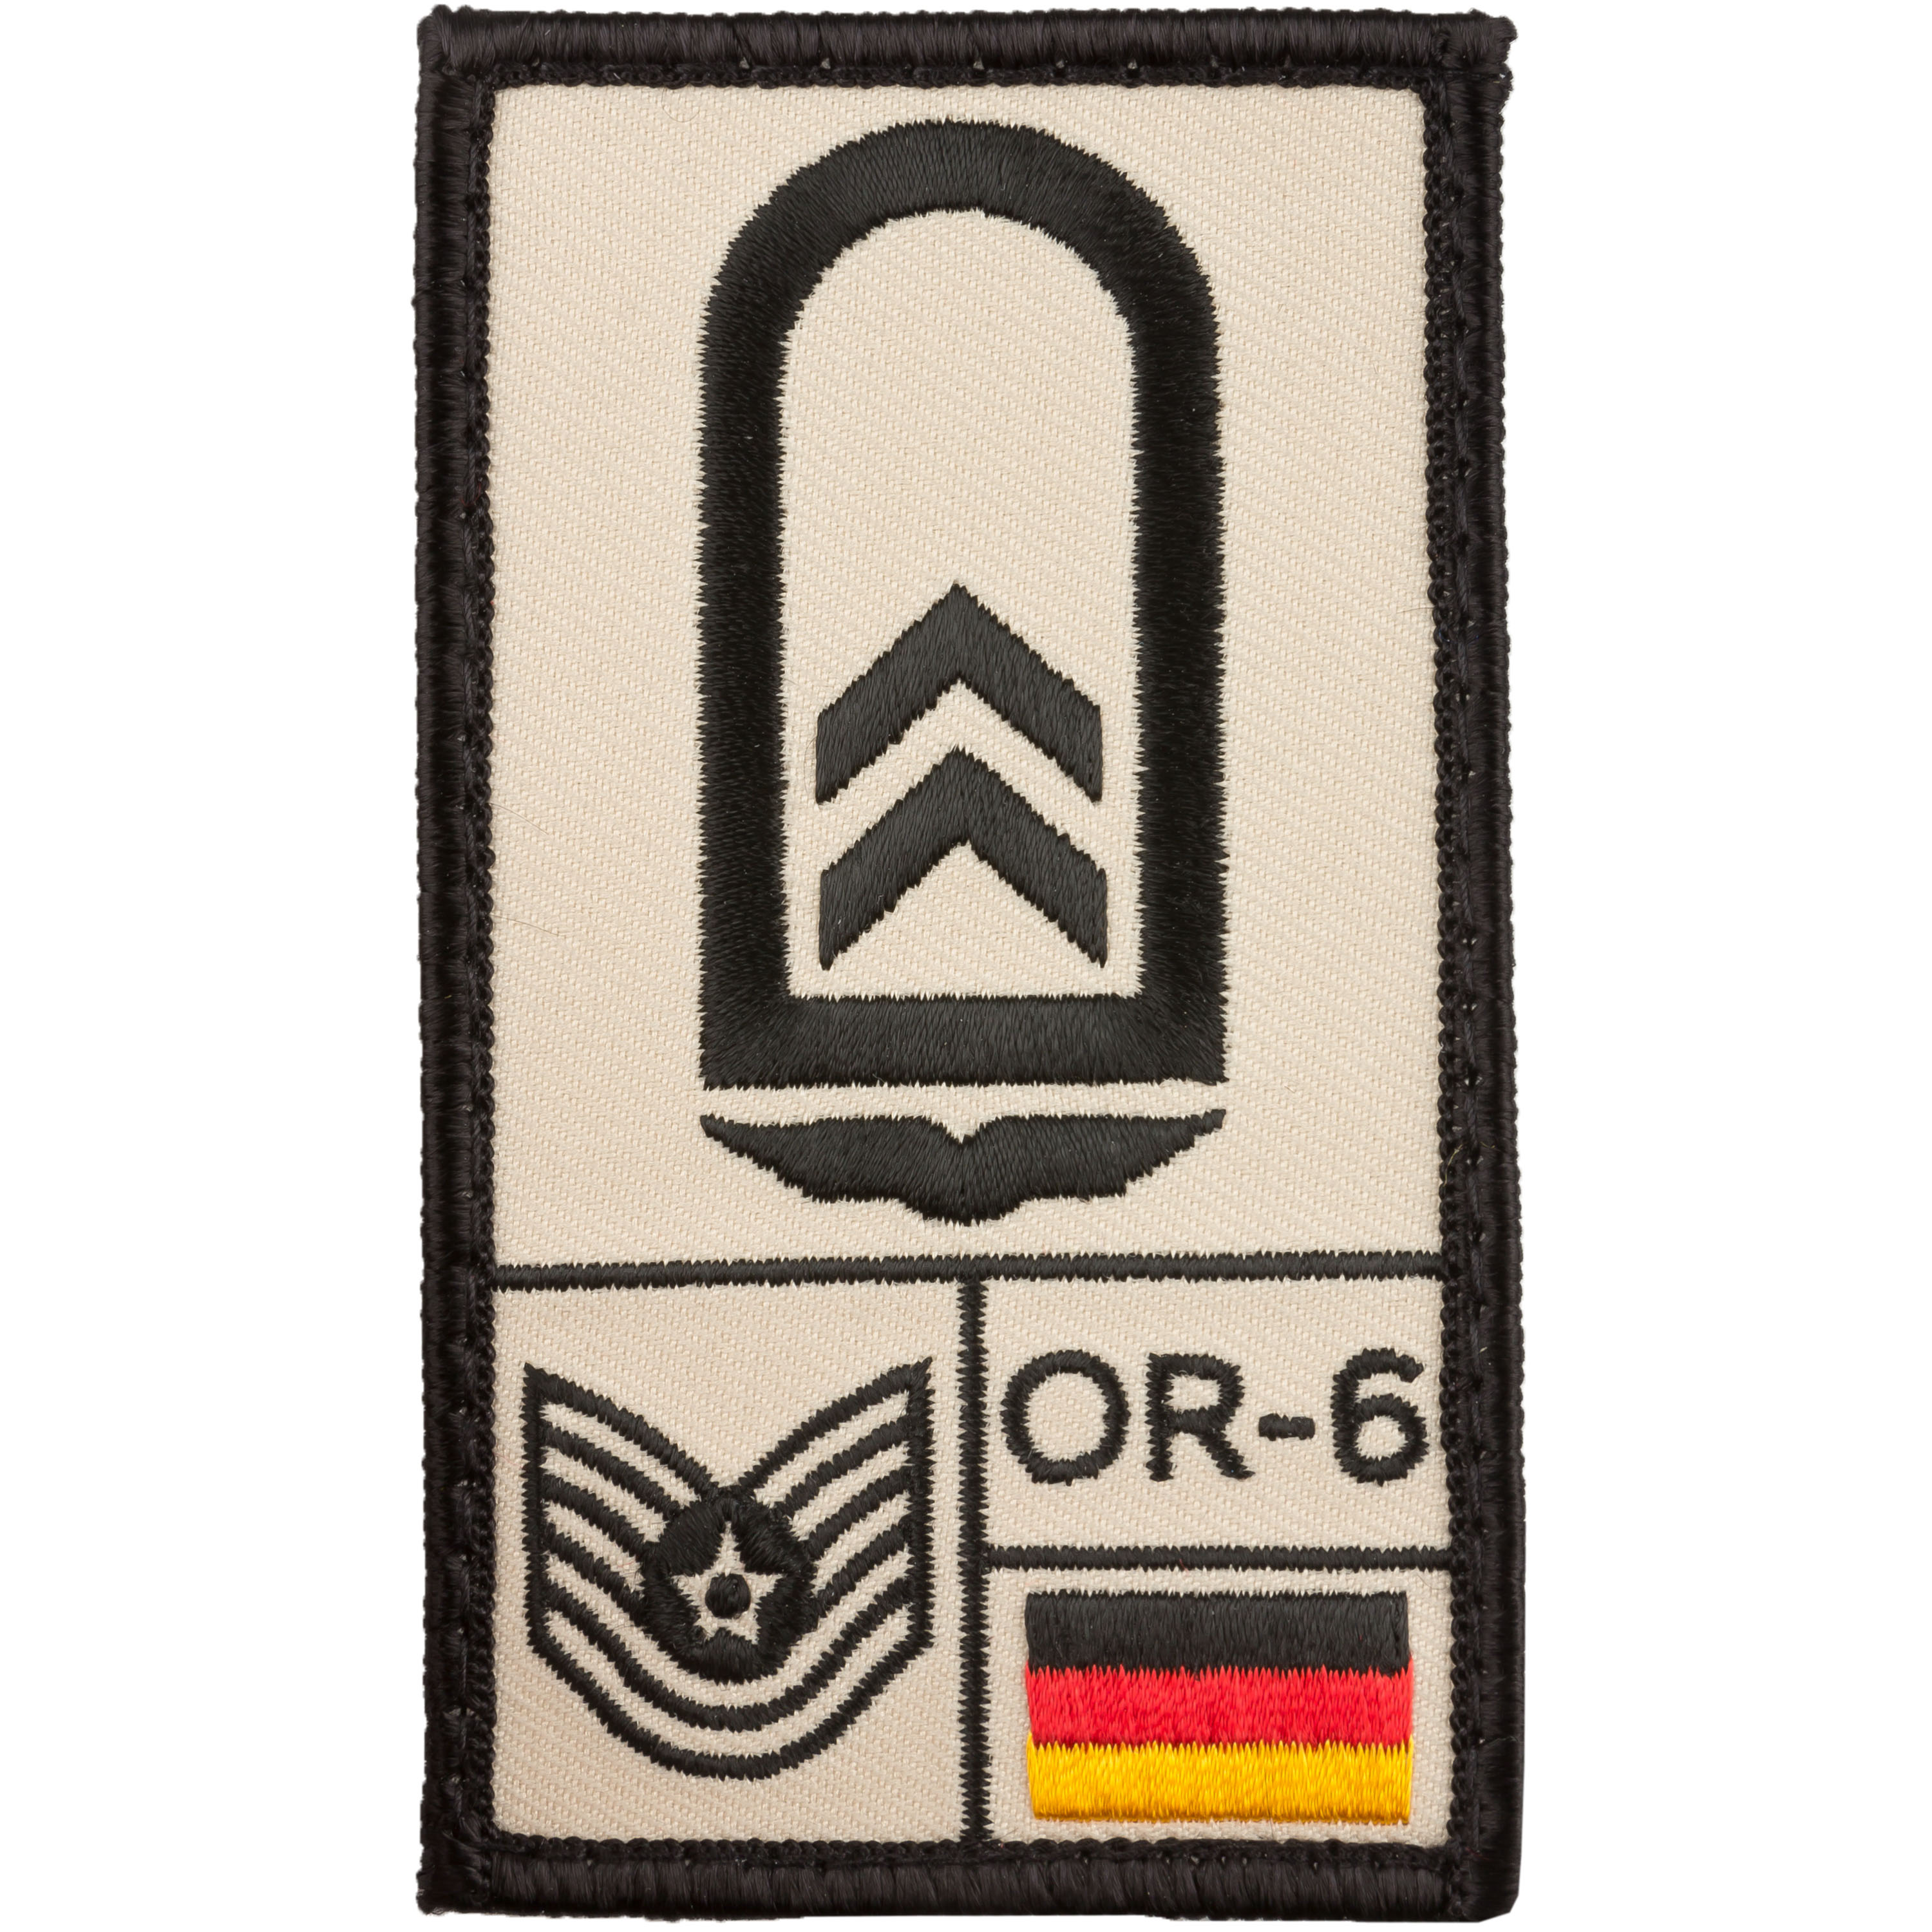 Café Viereck Rank Patch Oberfeldwebel Luftwaffe sand